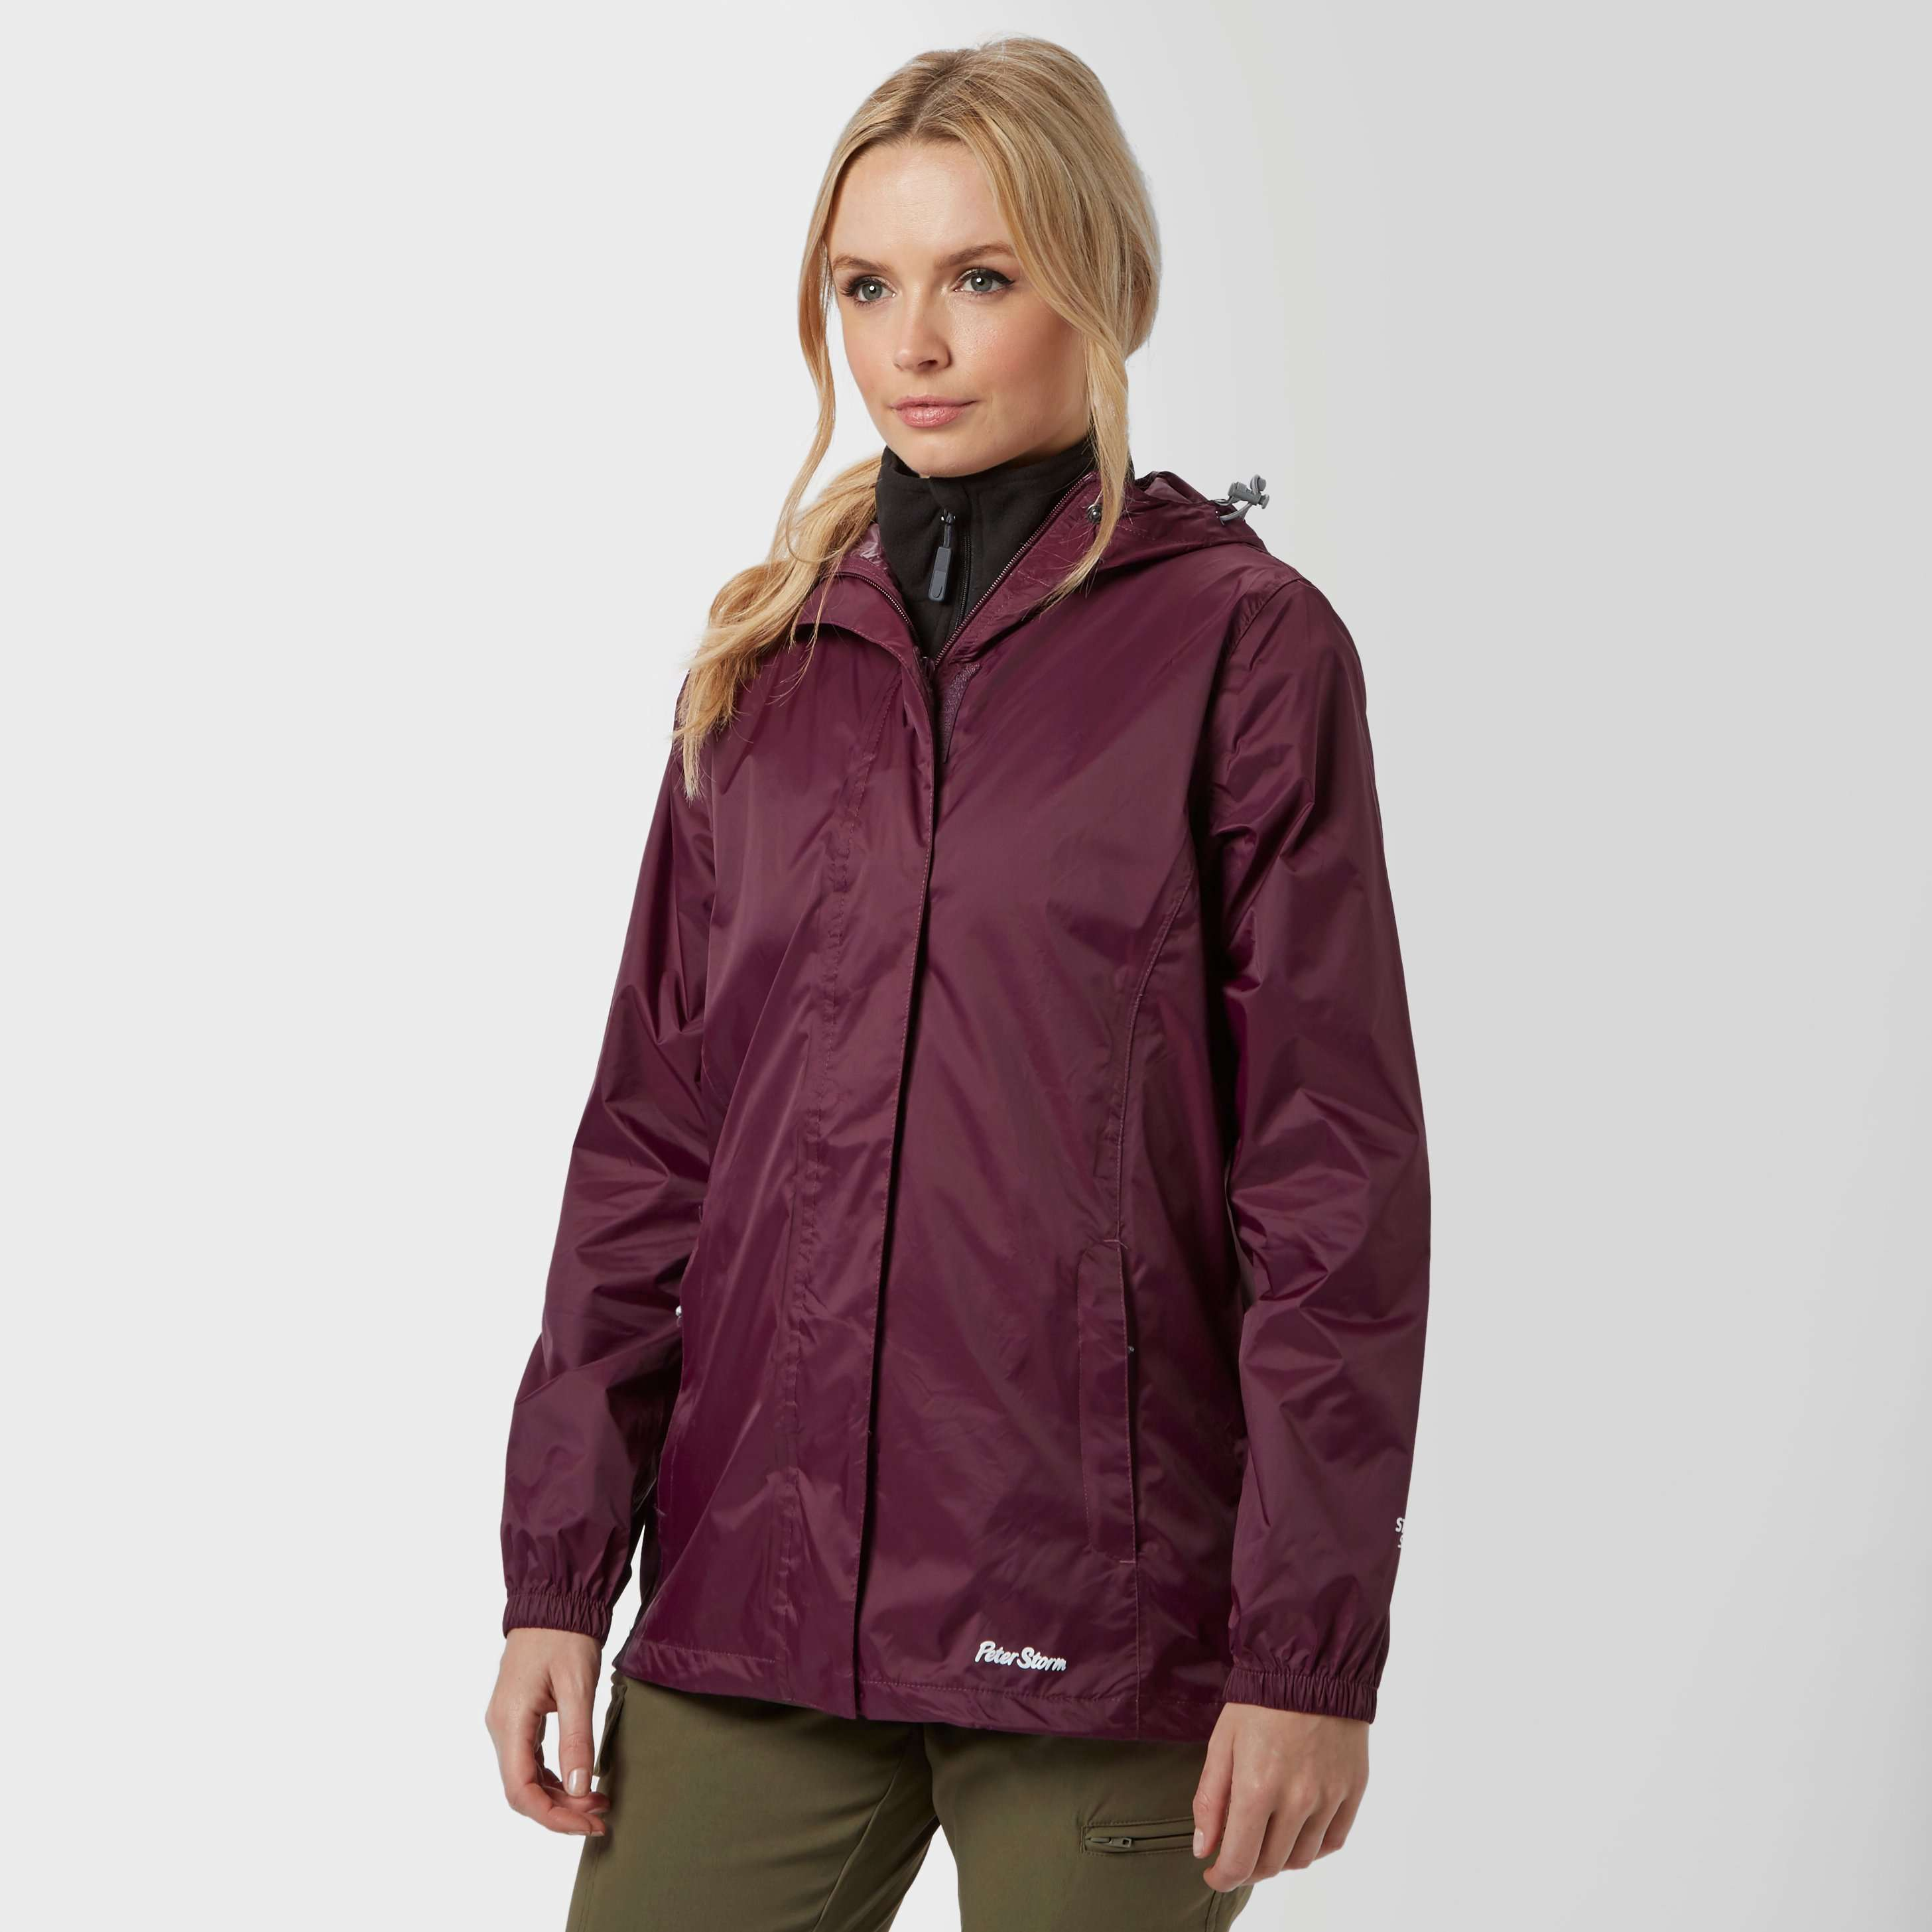 PETER STORM Women's Packable Hooded Jacket